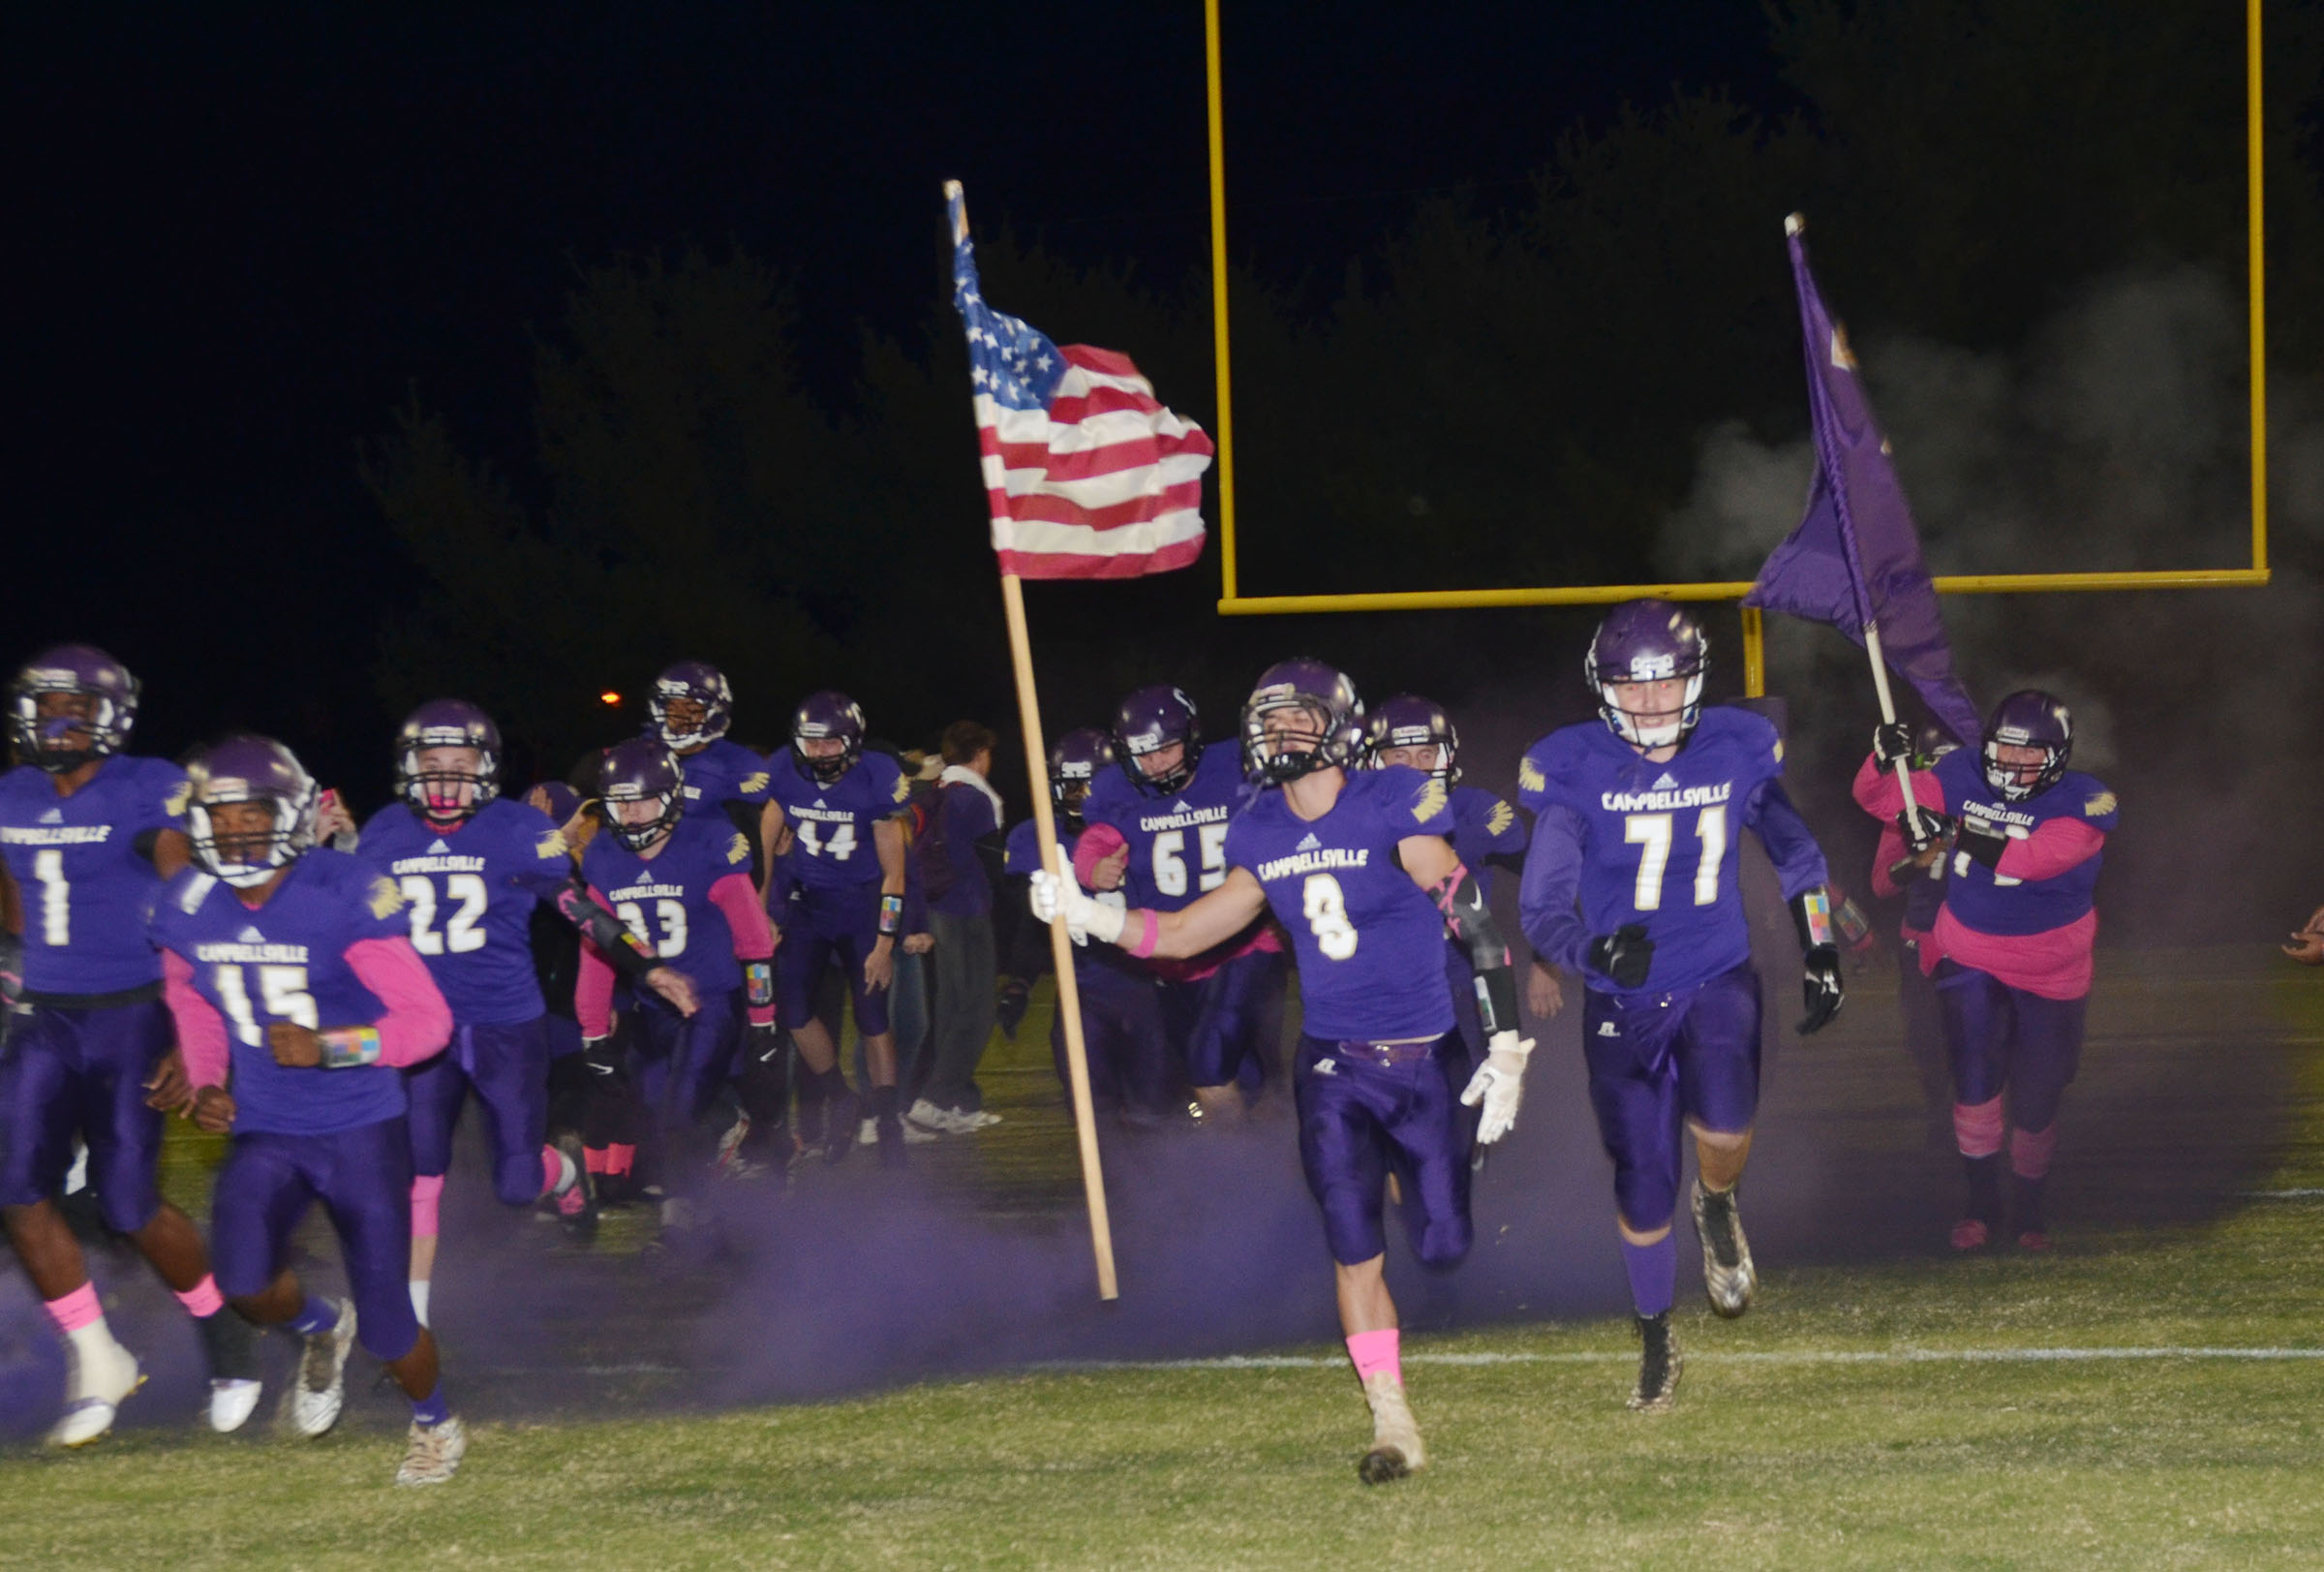 CHS football players take the field in a cloud of purple smoke.